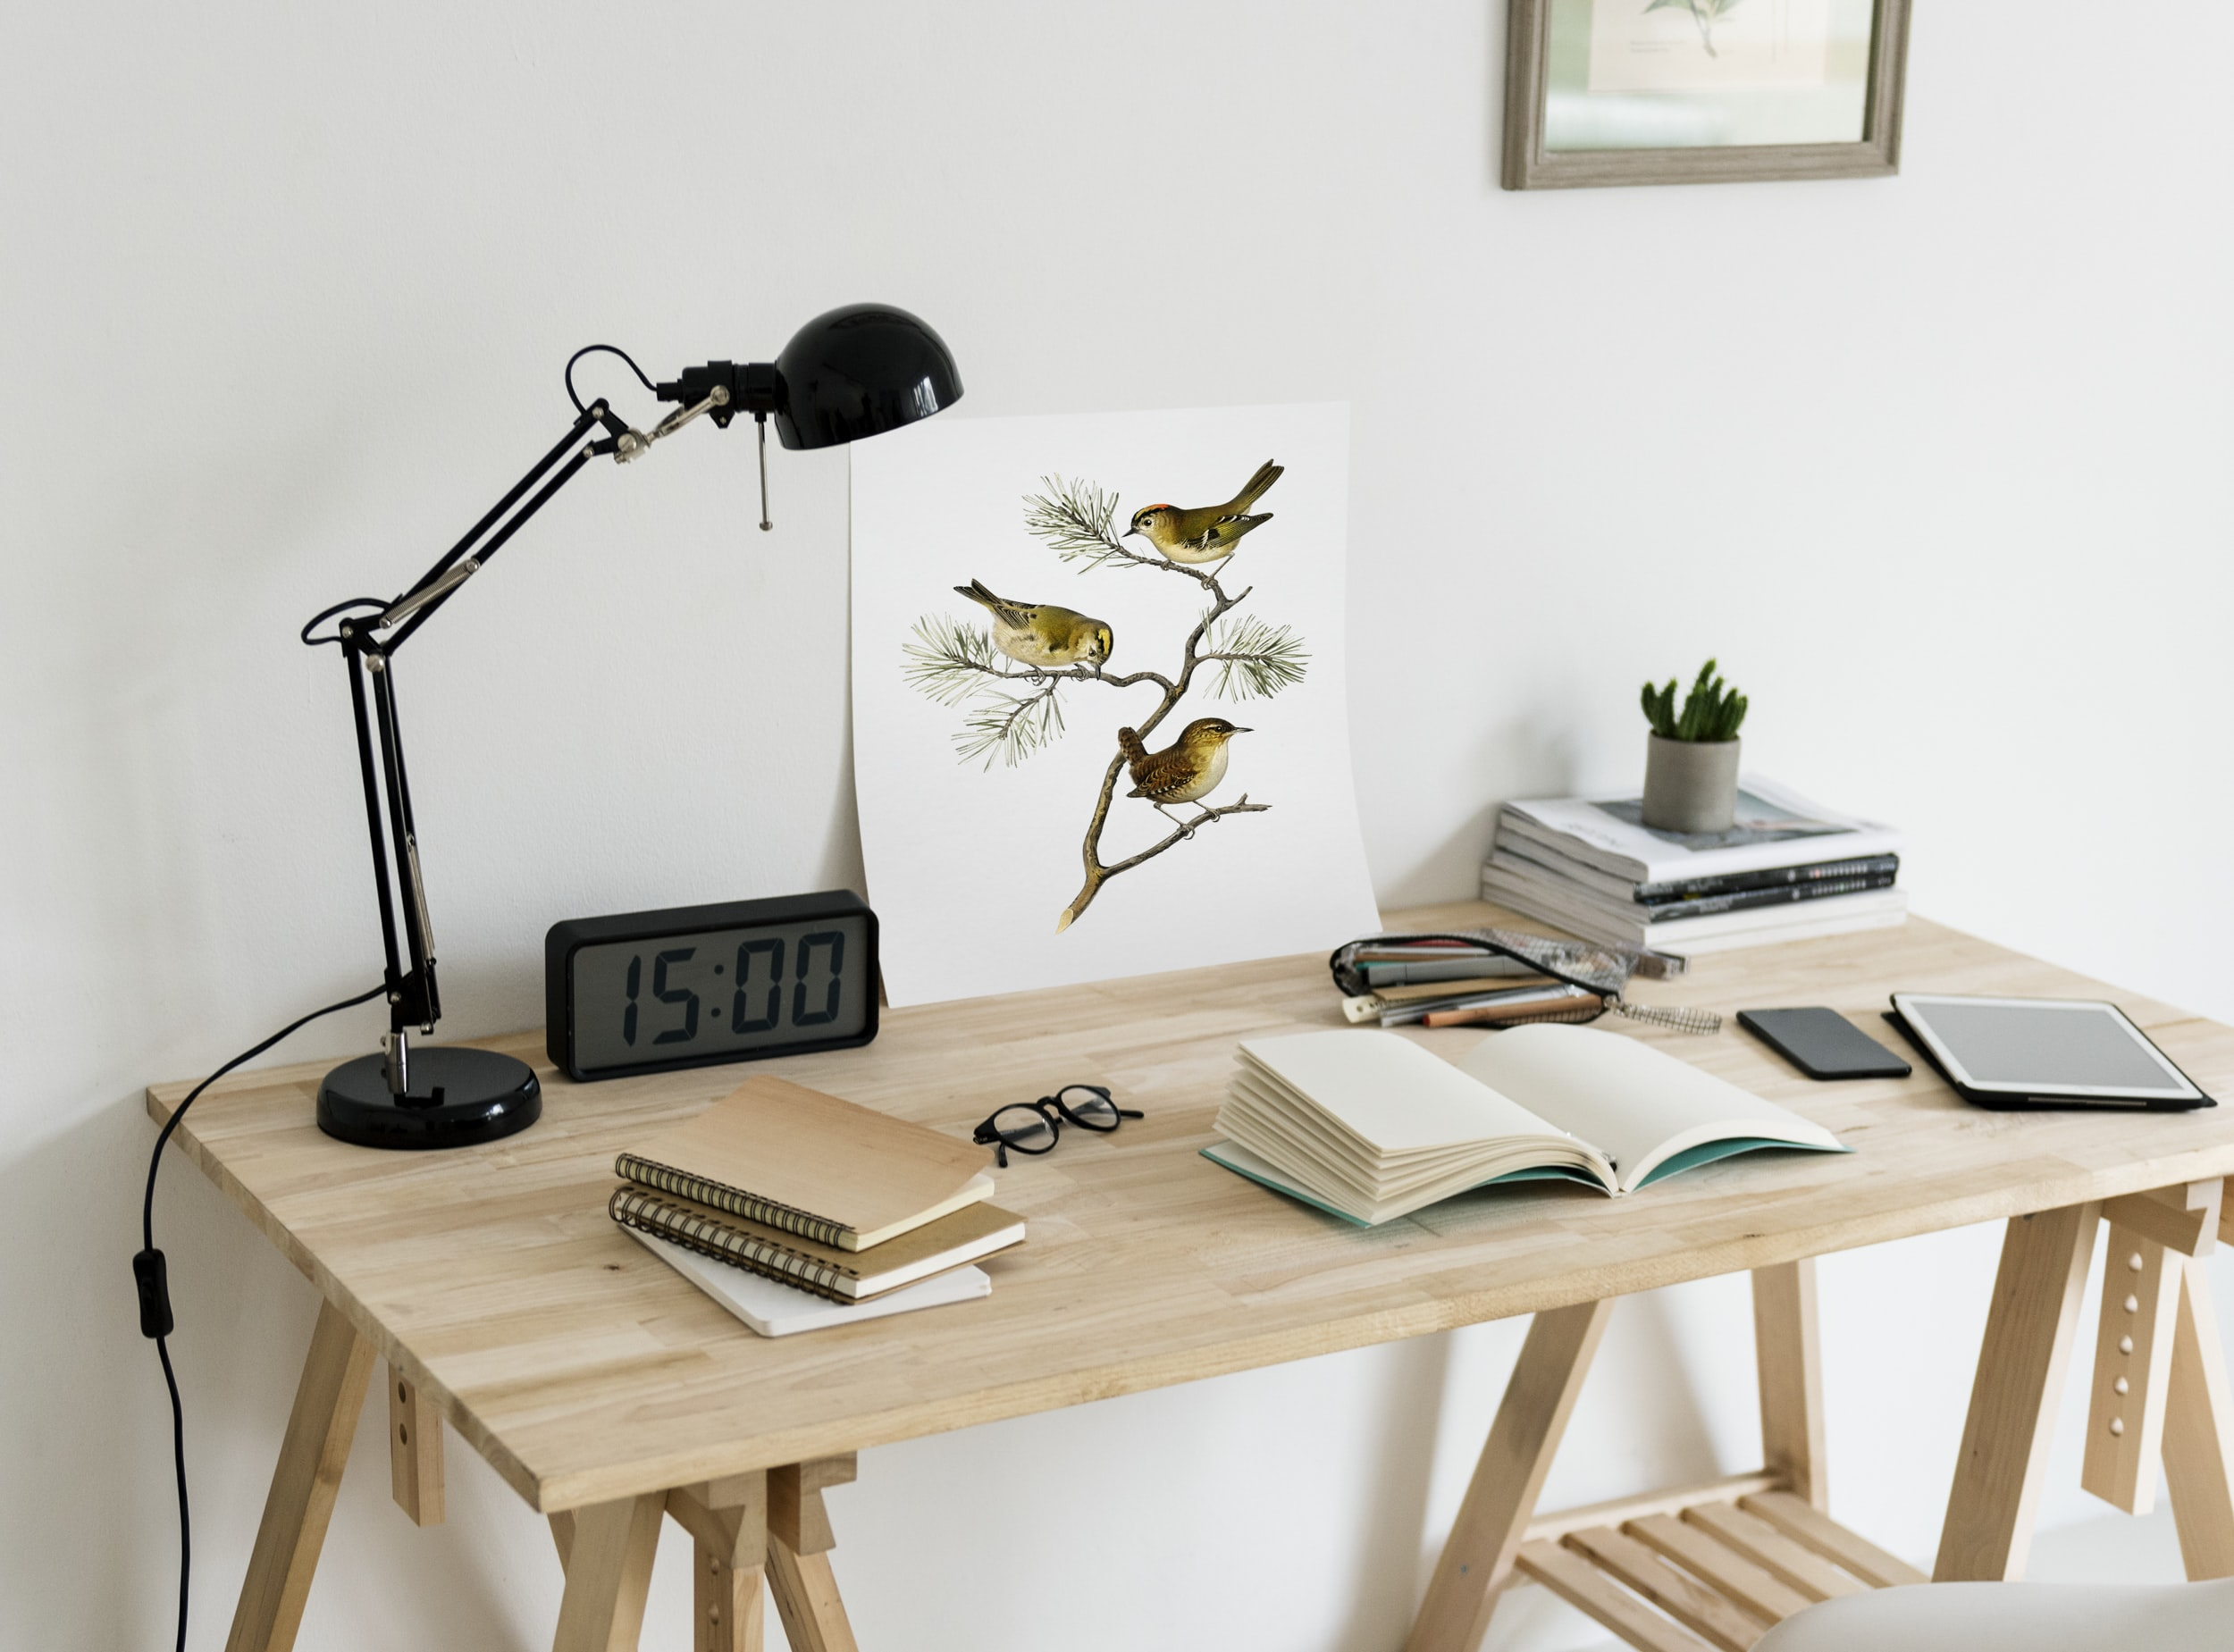 book, iPad, alarm clock, and desk lamp on table